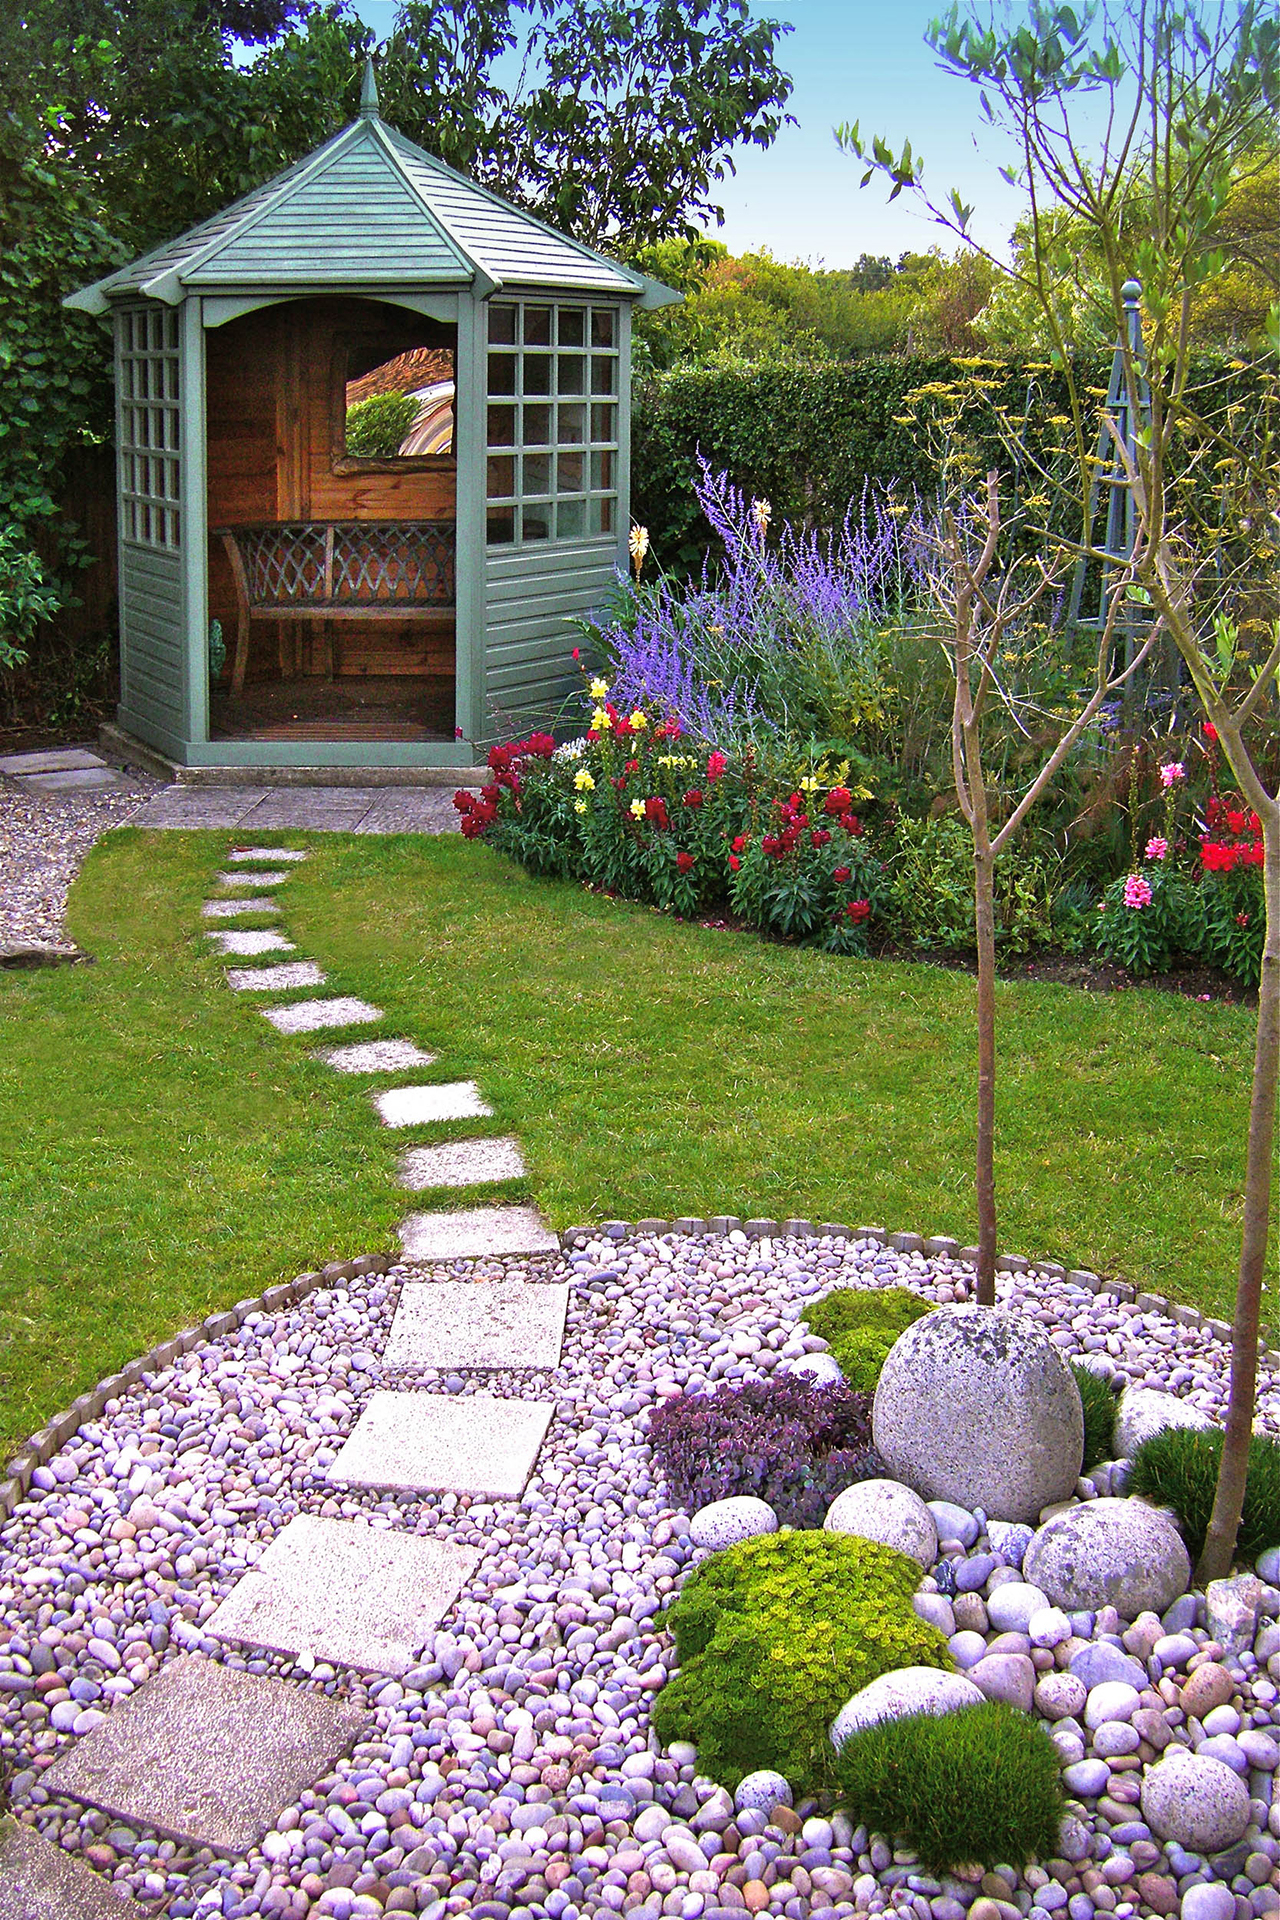 50 Best Backyard Landscaping Ideas And Designs In 2019 in Pics Of Backyard Landscaping